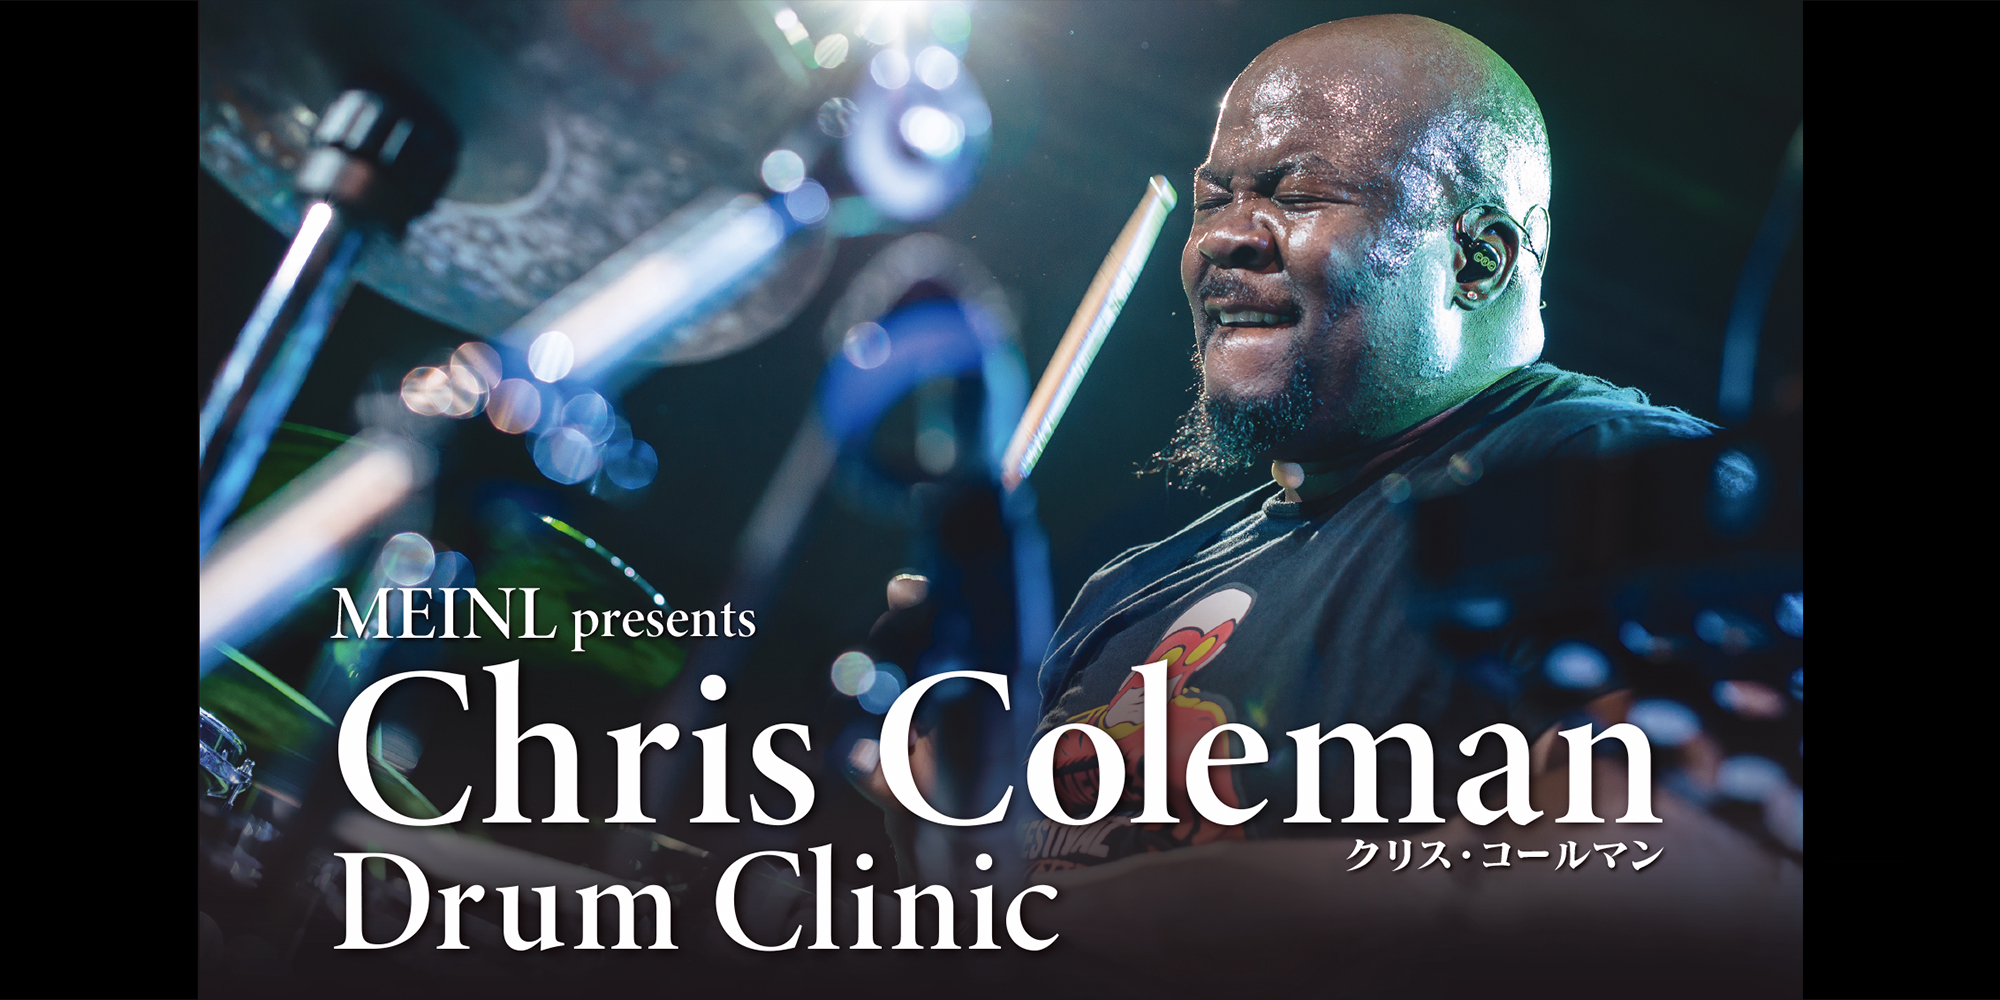 MEINL presents Chris Coleman Drum Clinic